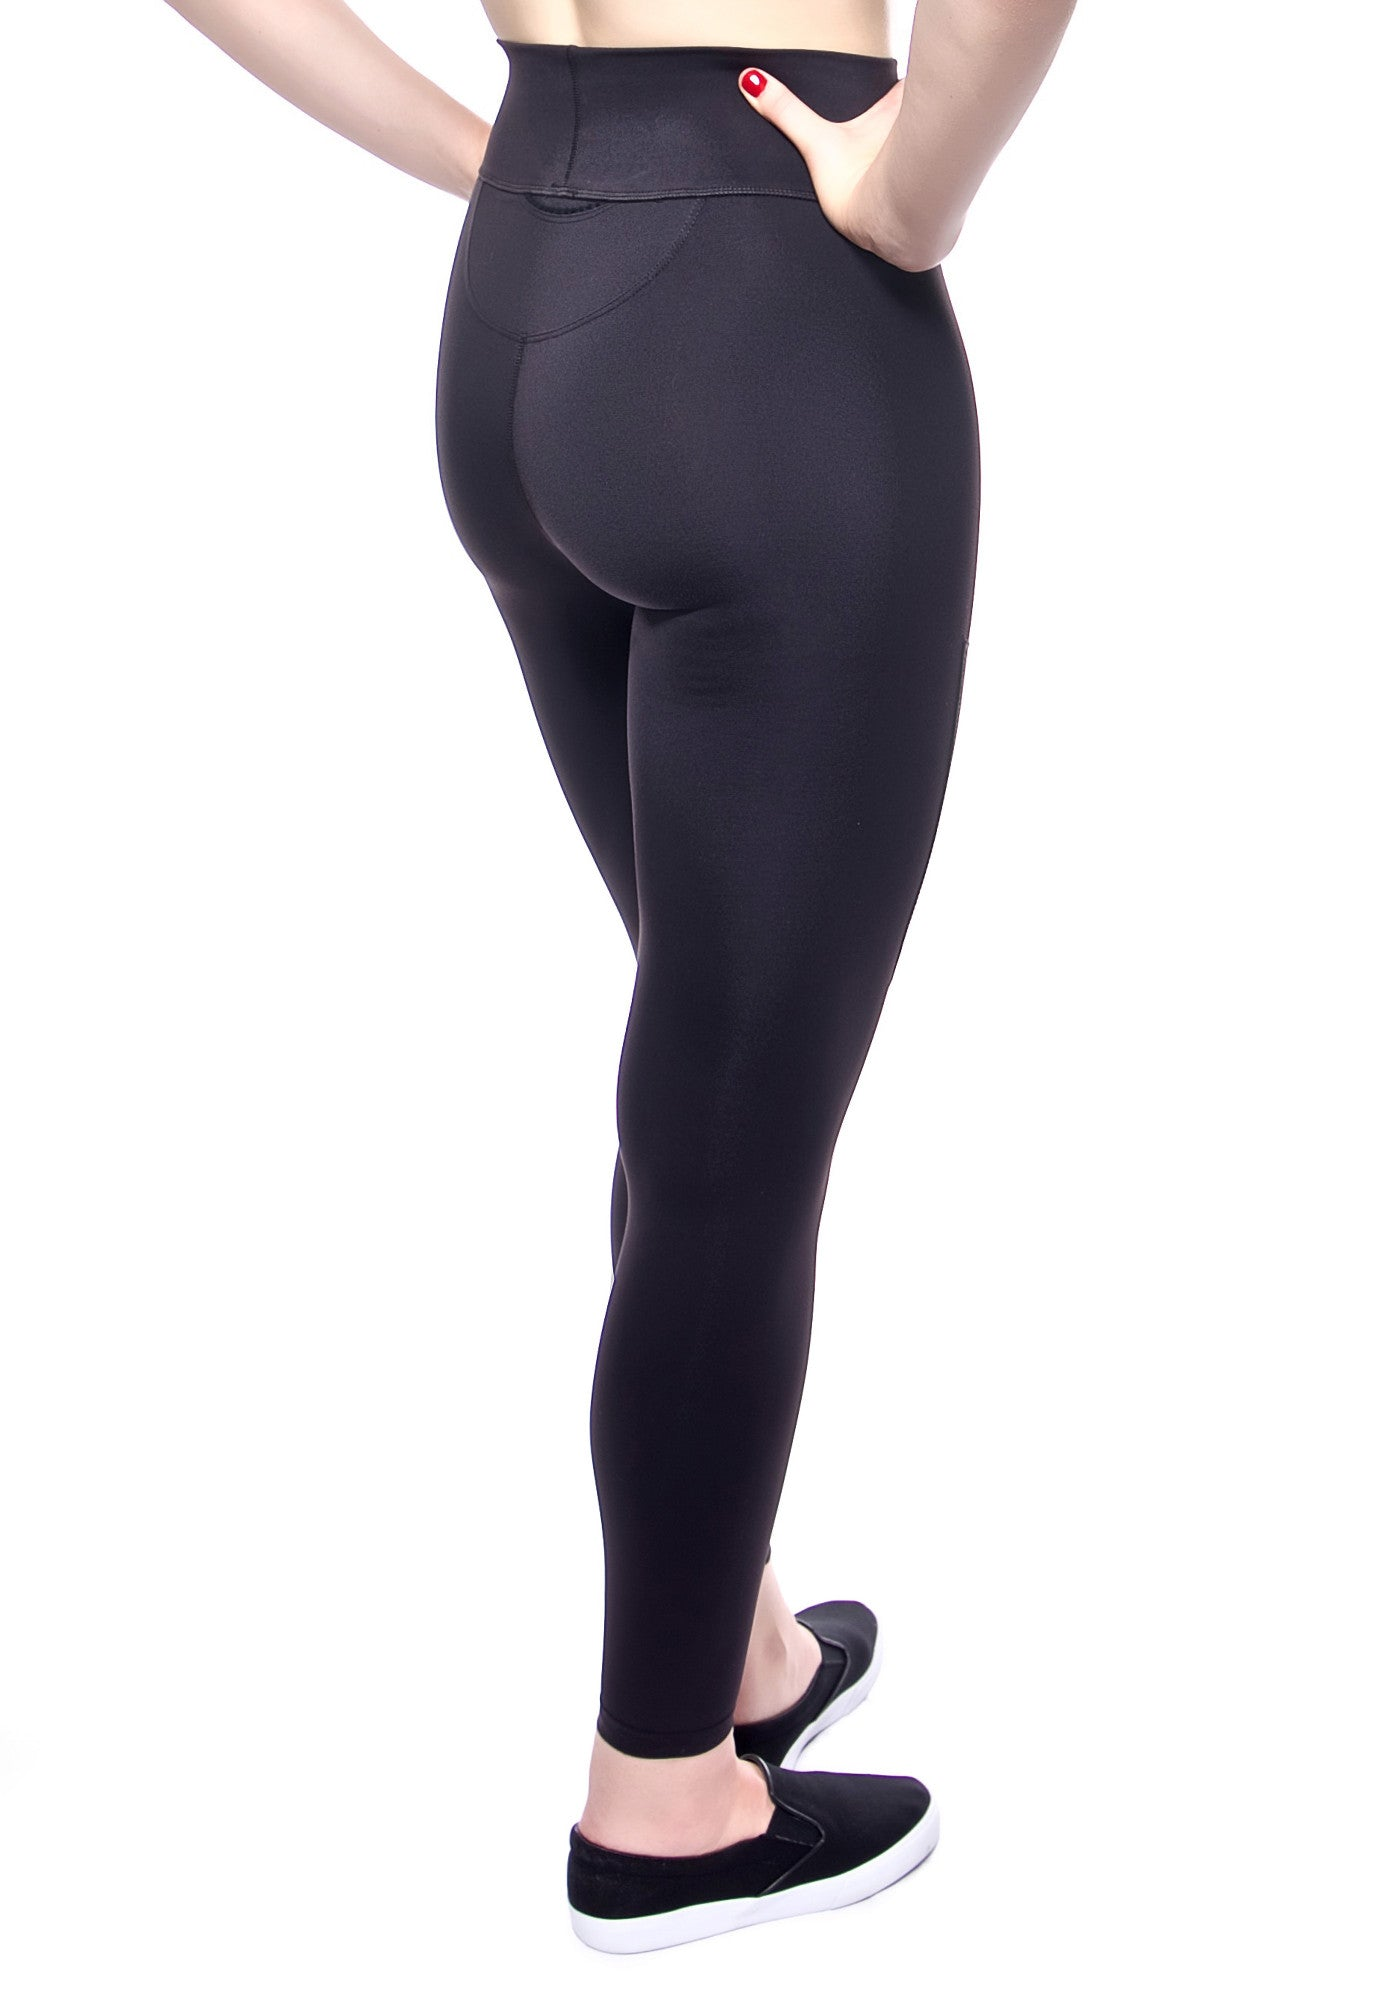 Back View. High waisted legging in black with foldover waistband, leather patches on thigh, convenient back pocket at waist. Made from premium high performance activewear fabric that wicks moisture away from your body to keep you comfortable.